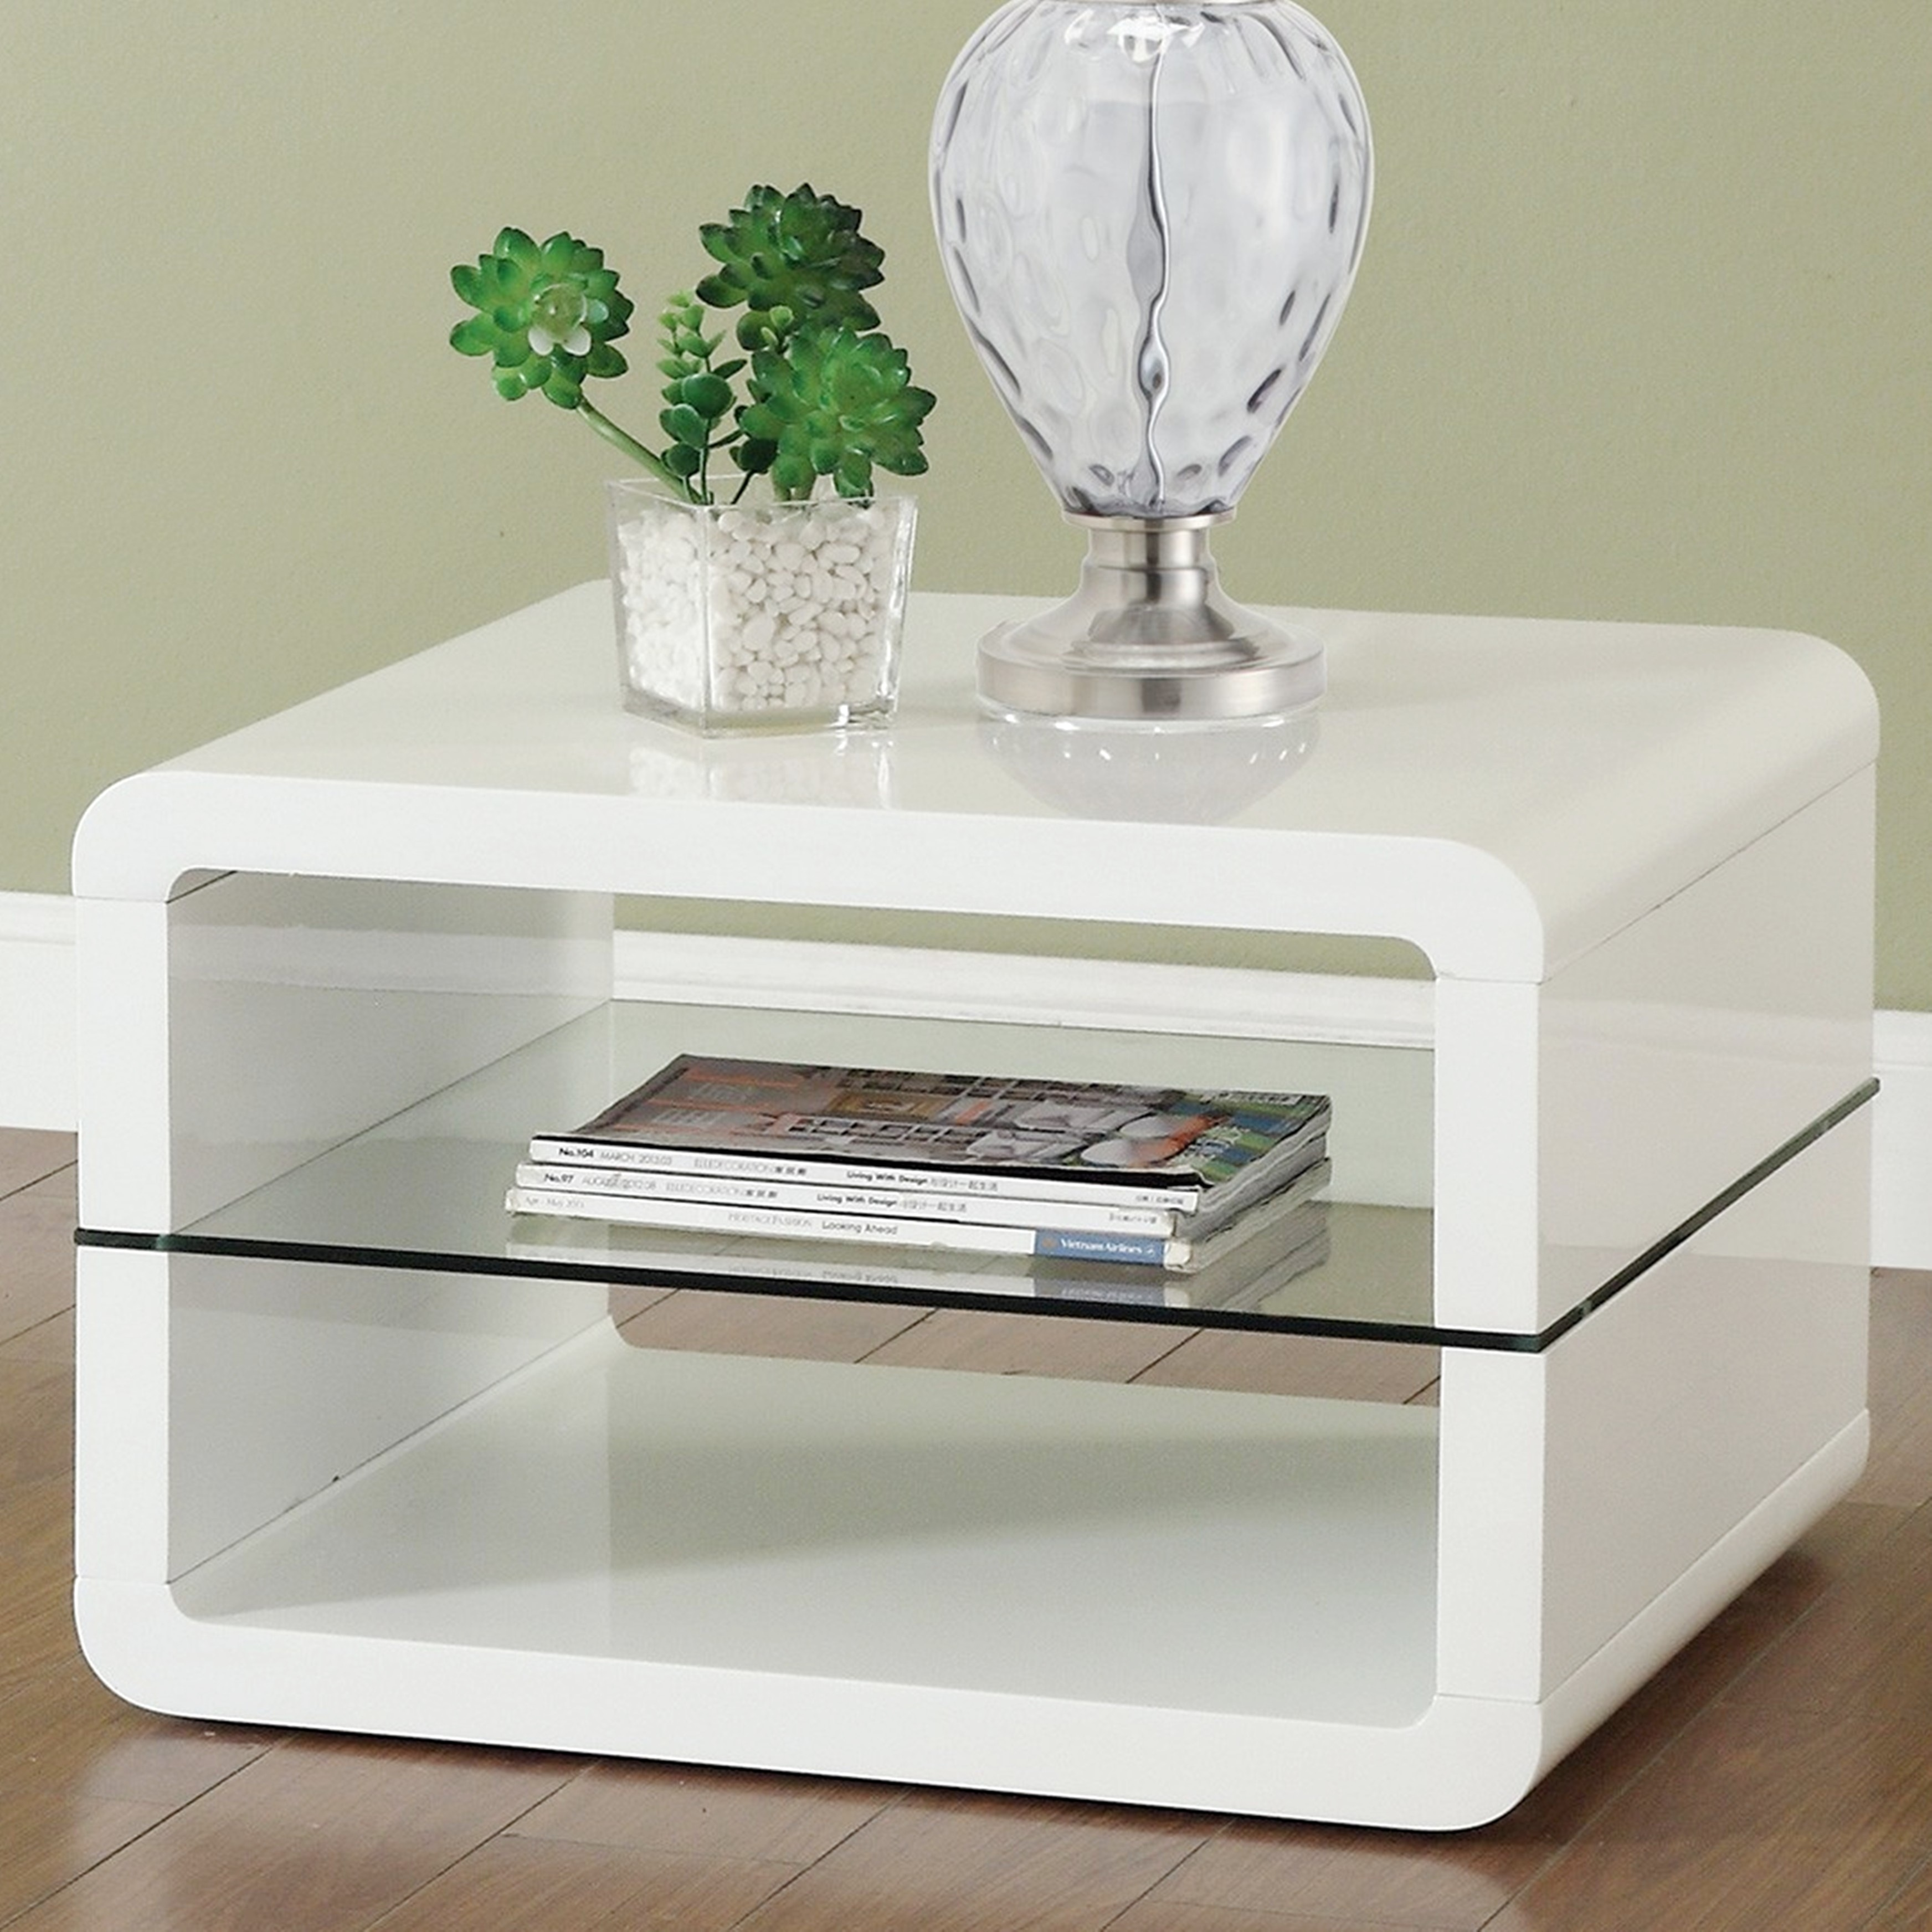 Shop modern cube design living room accent table collection with glass shelf free shipping today overstock com 23552565